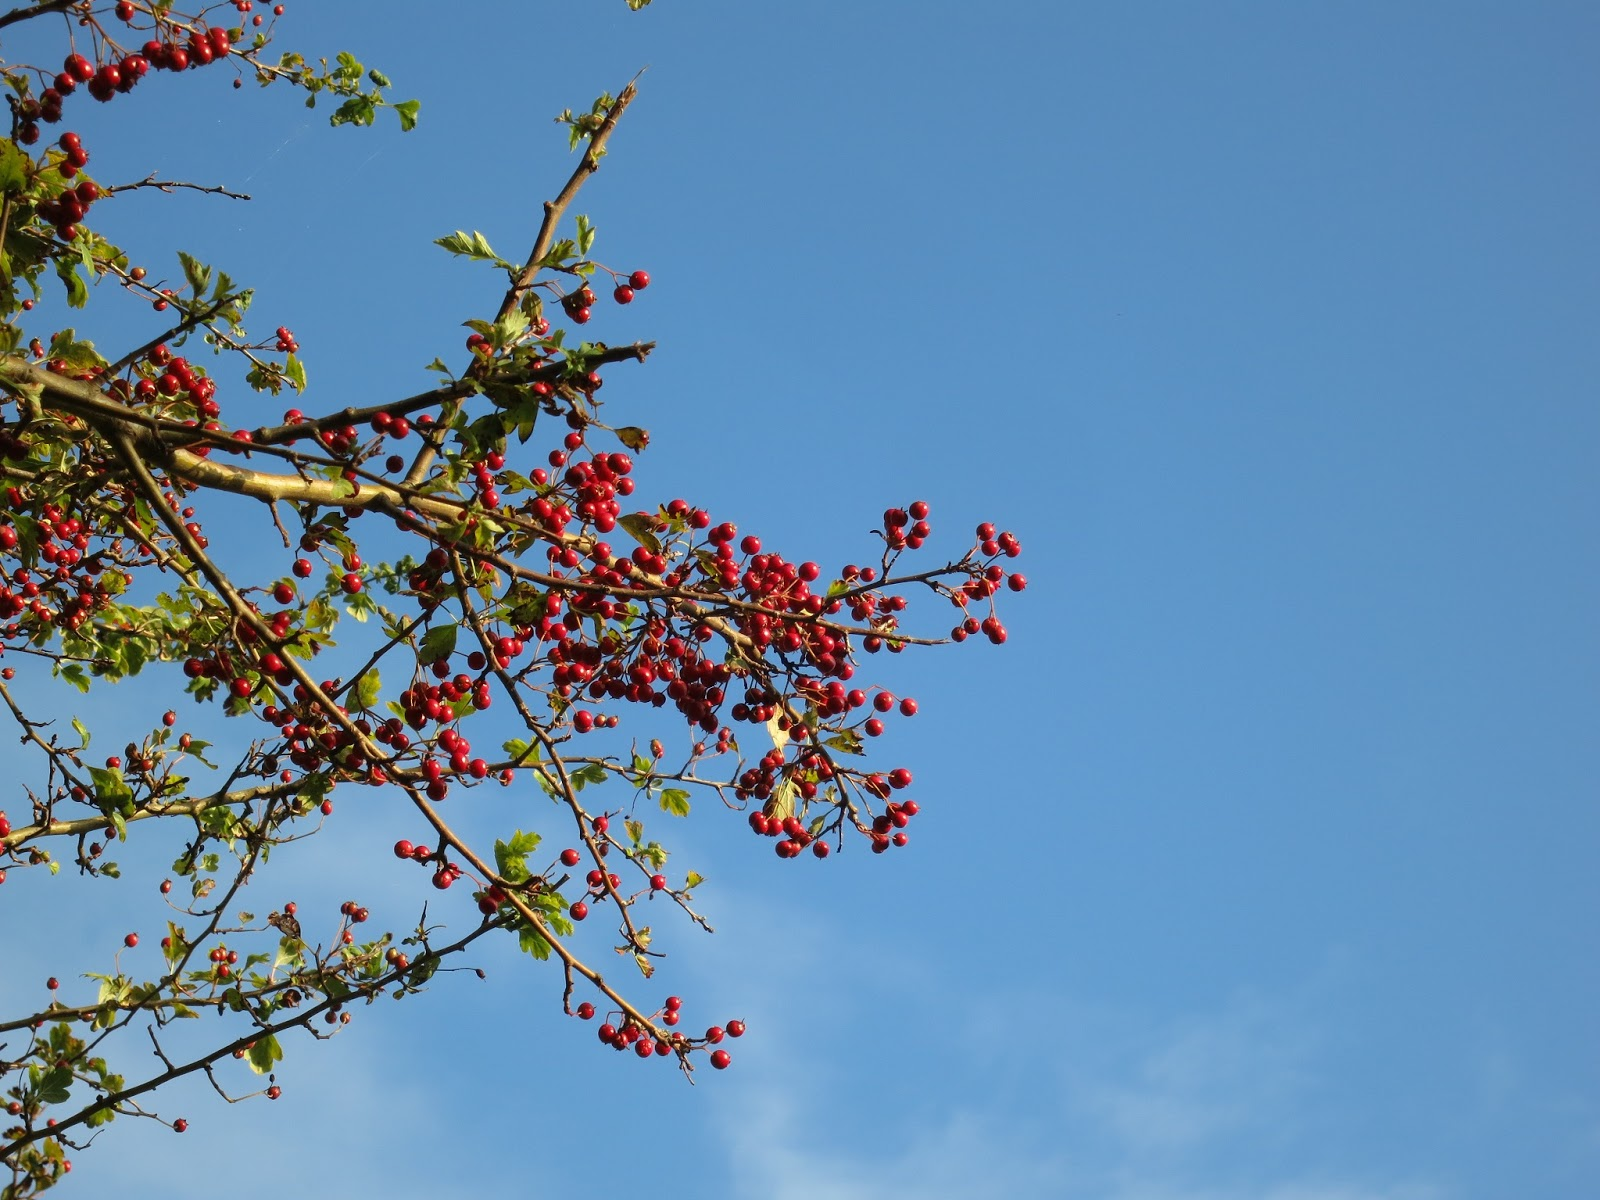 Red hawthorn berries and leaves against blue sky